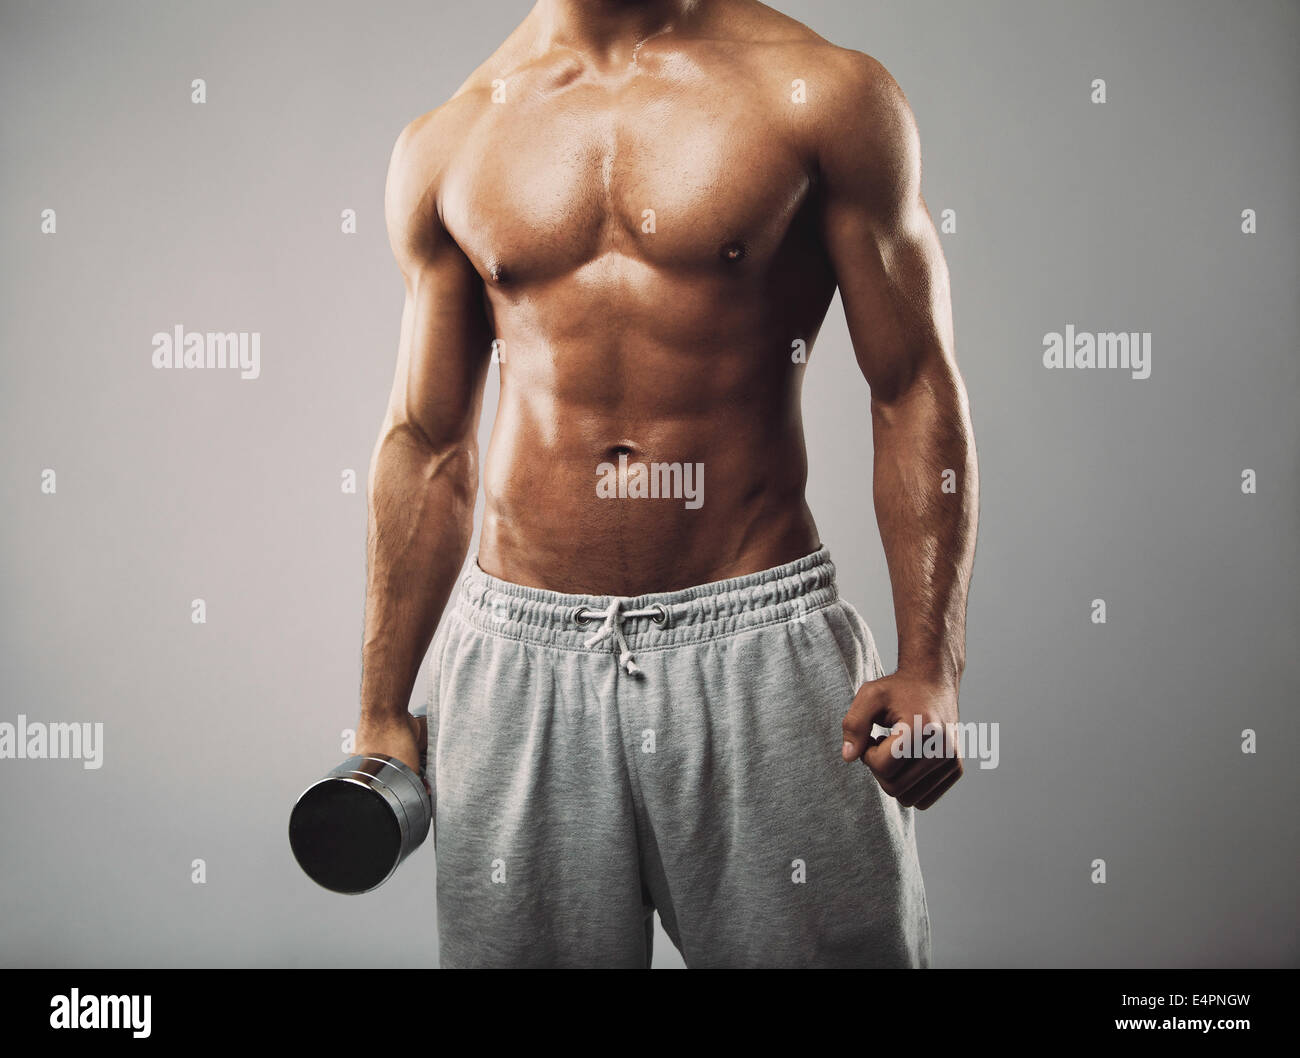 Studio shot of a male model in sweatpants holding dumbbell on grey background. Shirtless muscular man working out. - Stock Image